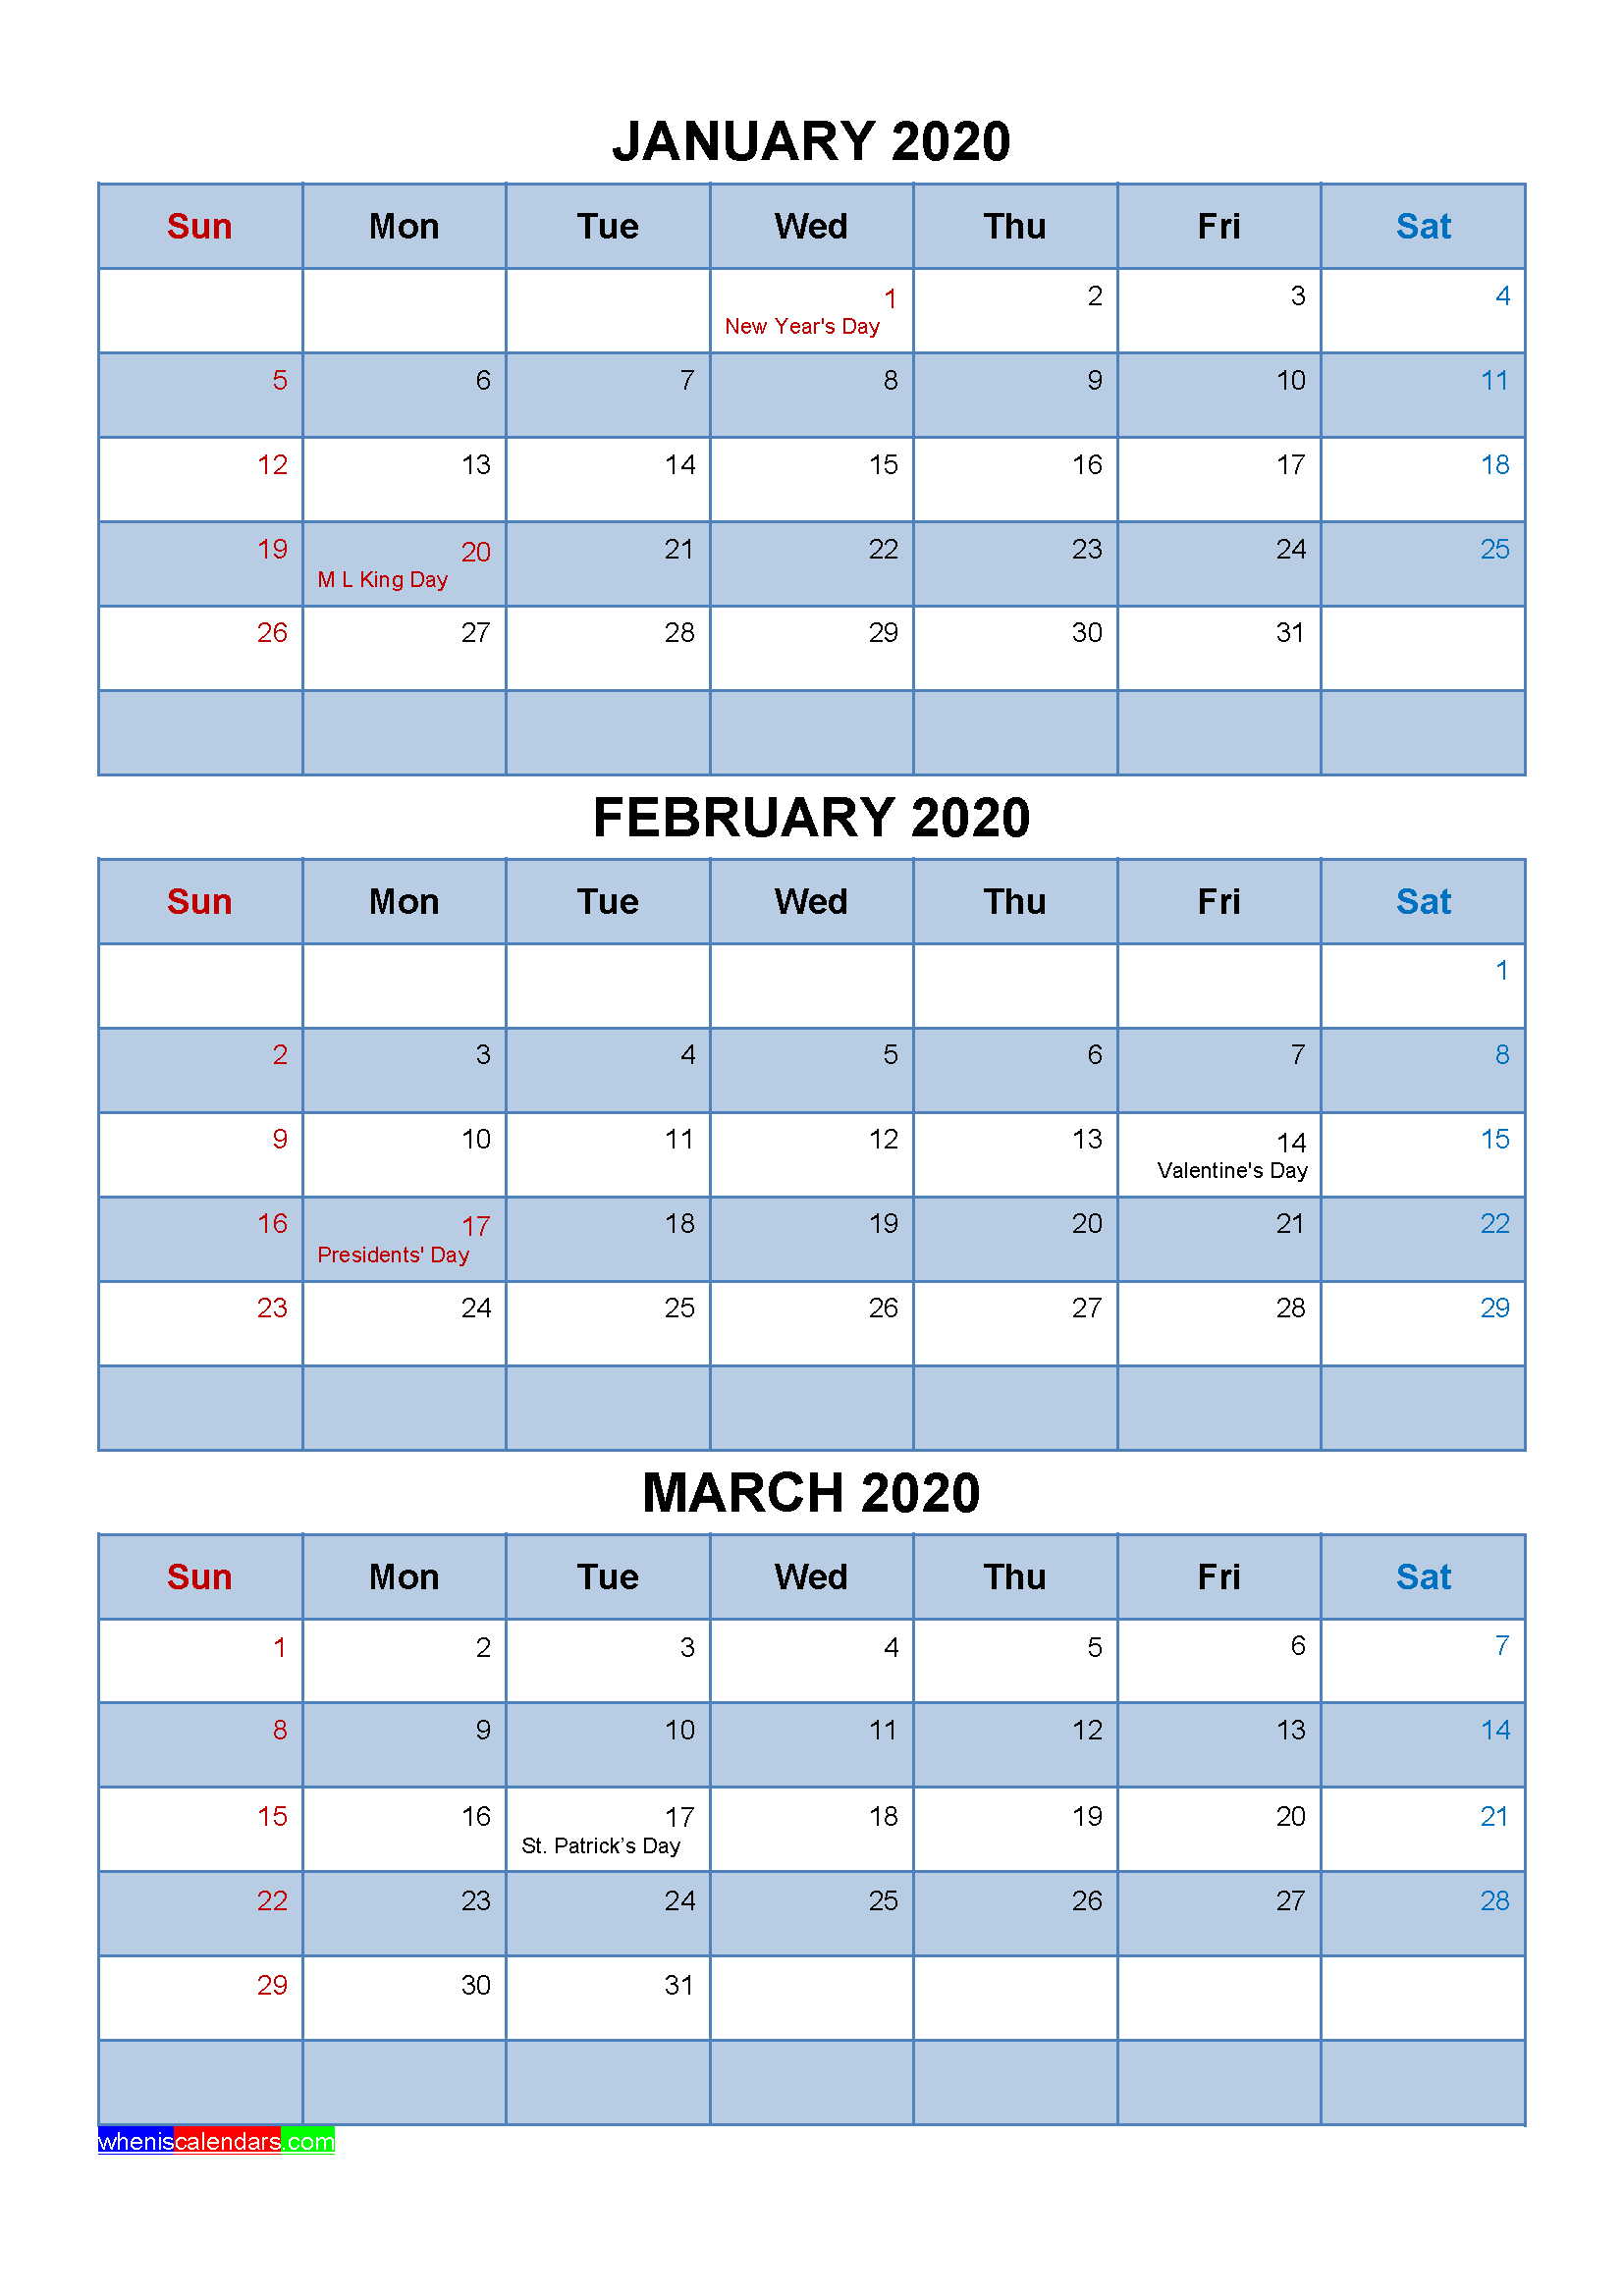 Free January February March 2020 Printable Calendar Template throughout 2020 Quarterly Calendar Template Excel